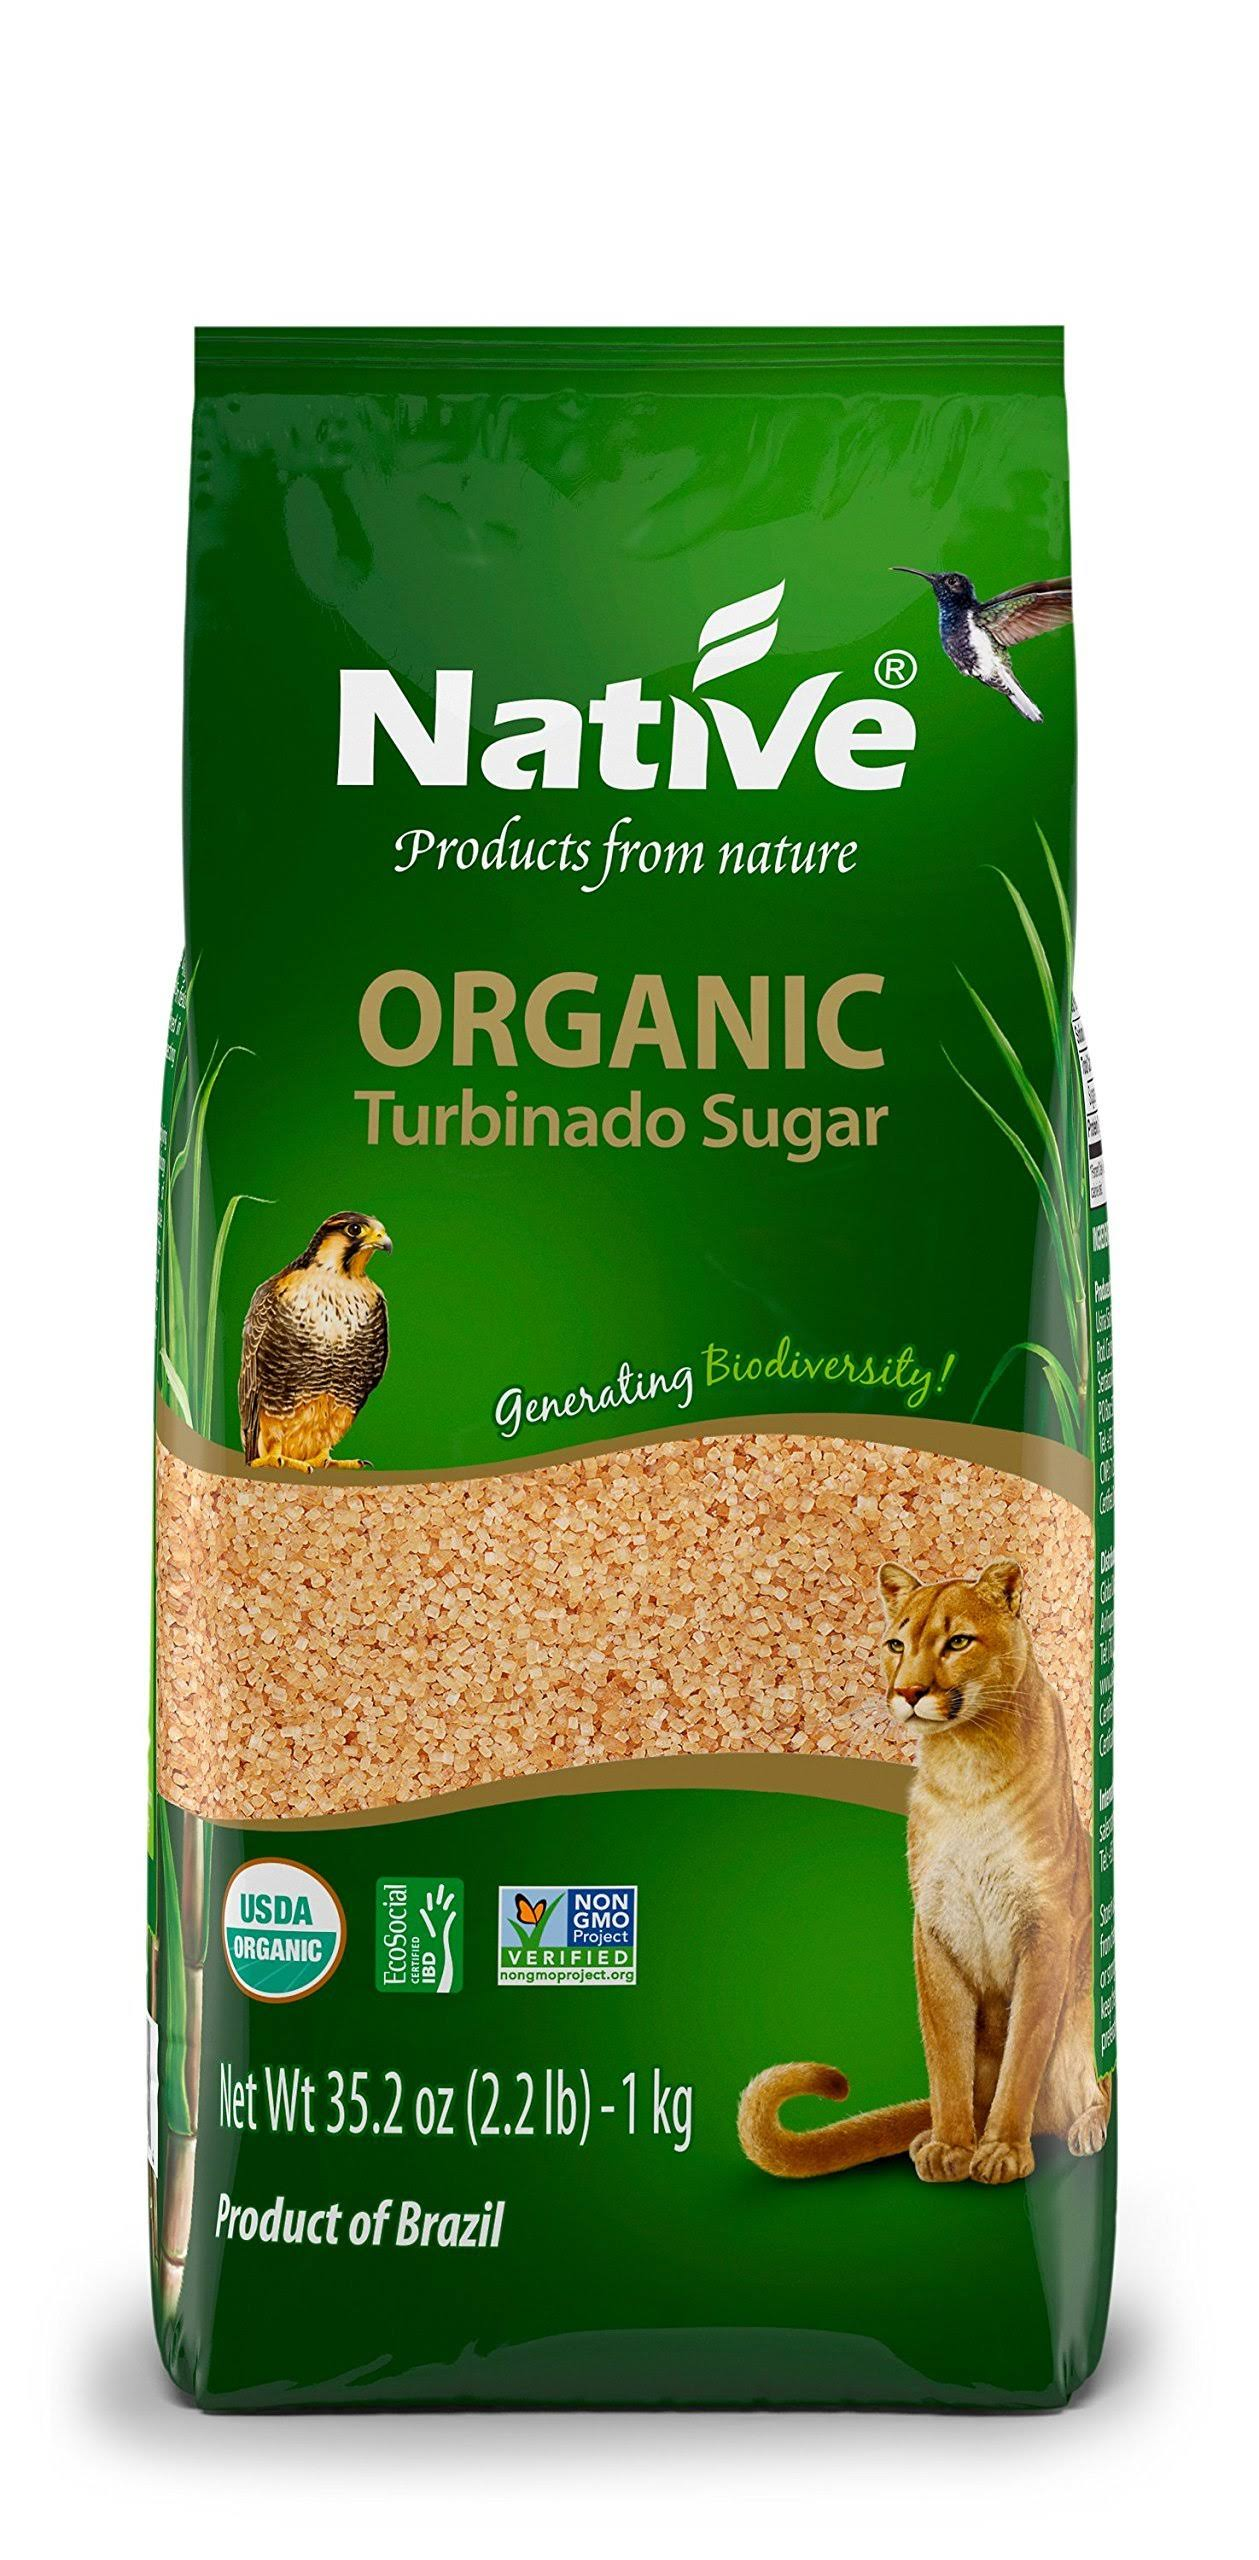 Native USA Turbinado (Demerara) Organic Sugar - 2.2lb, 12ct